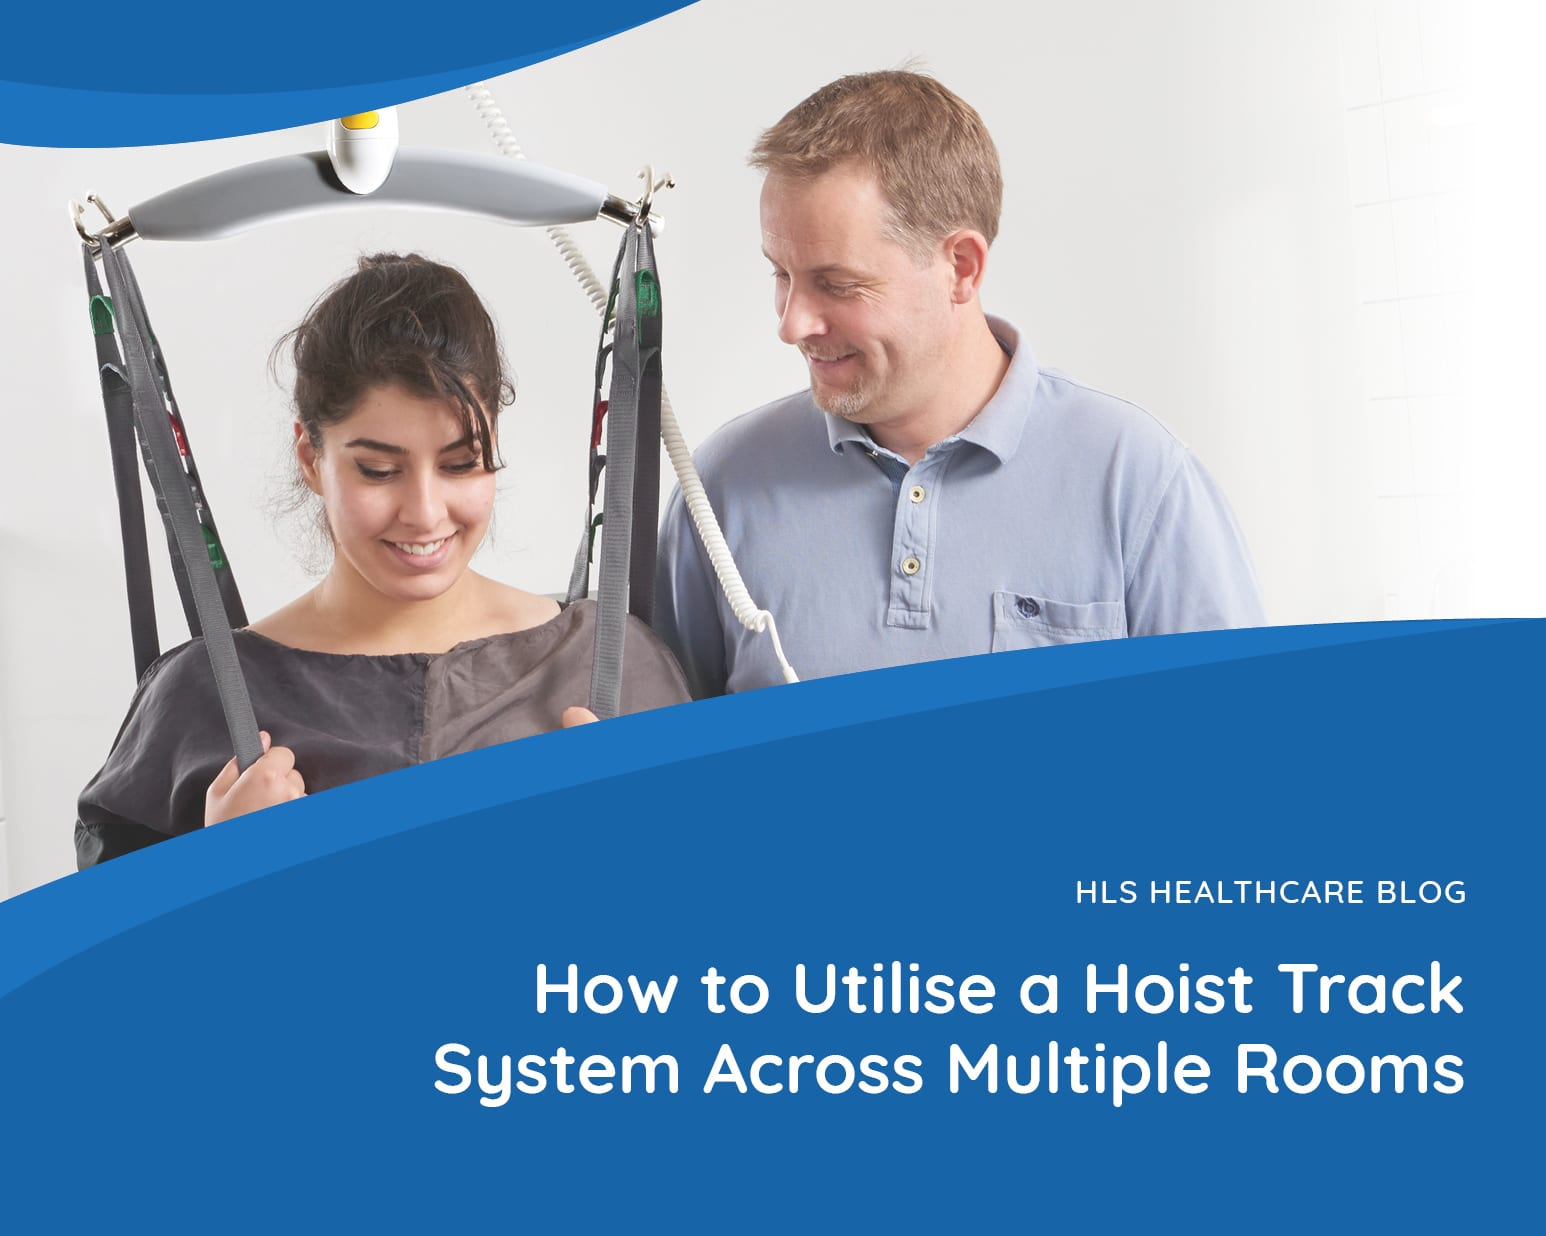 How to Utilise a Hoist Track System Across Multiple Rooms